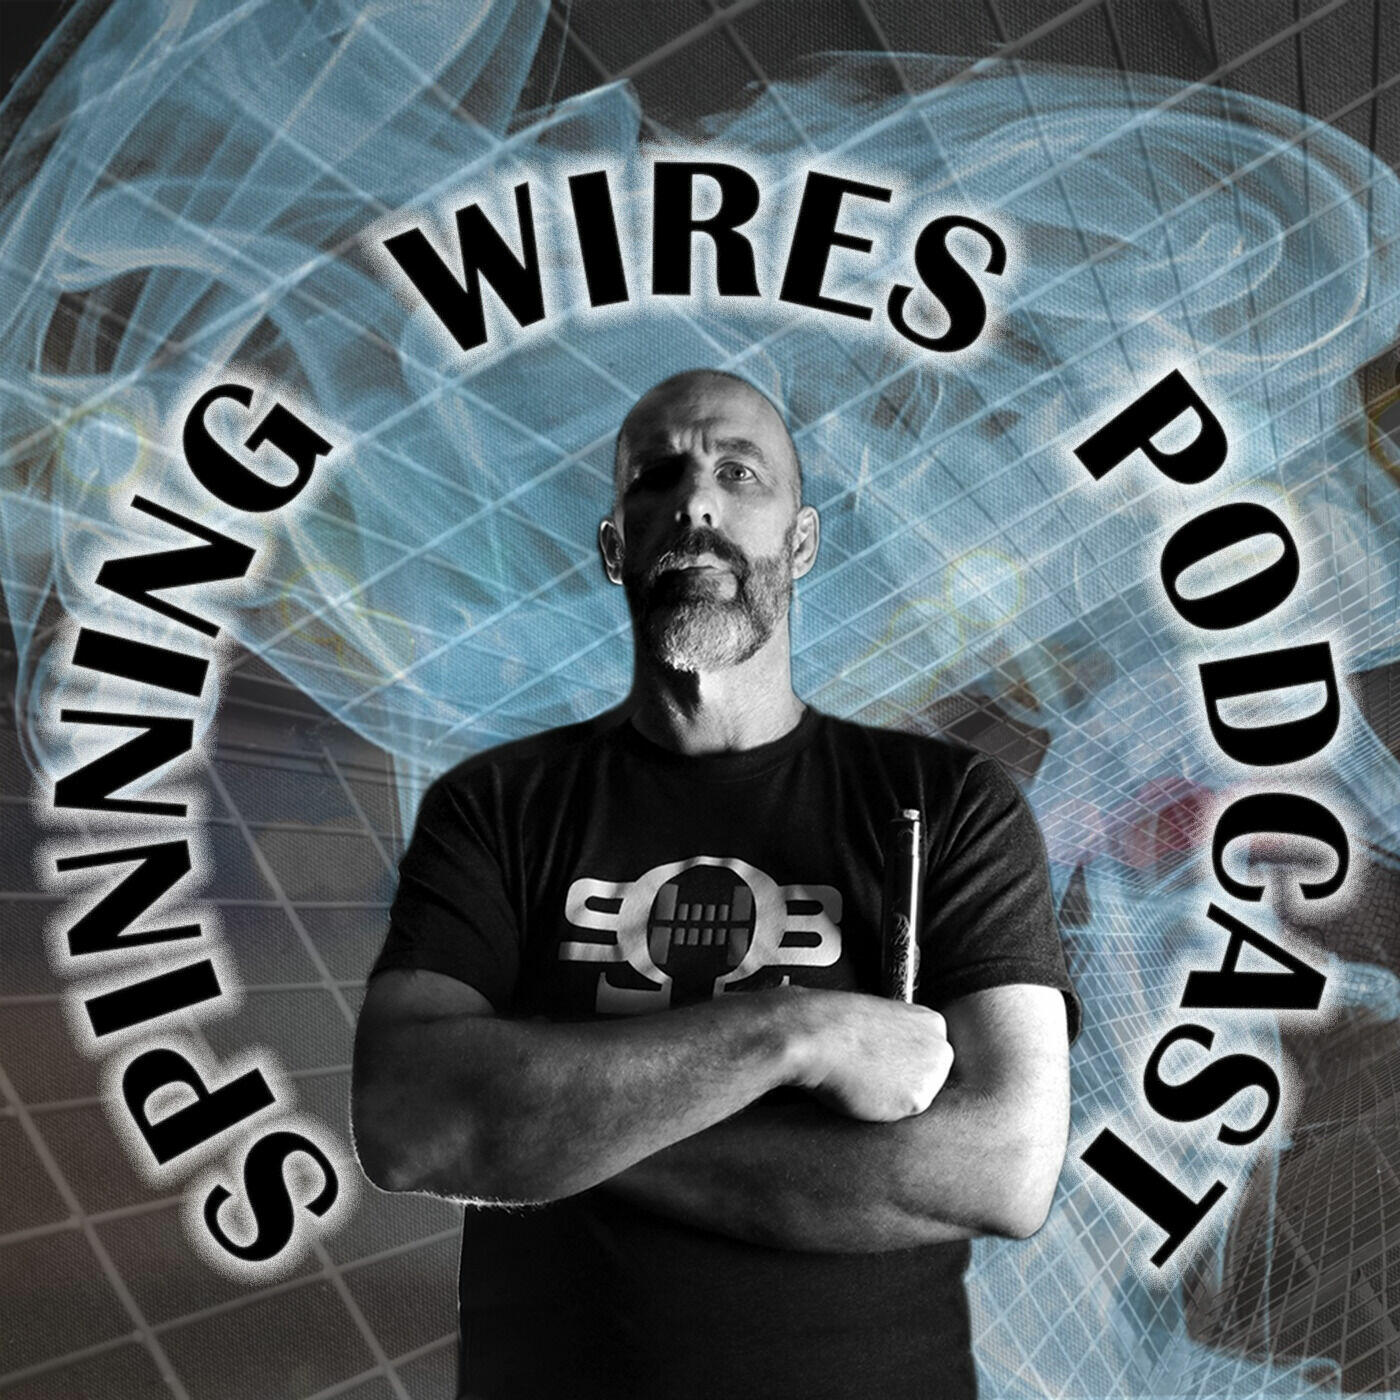 Spinning Wires